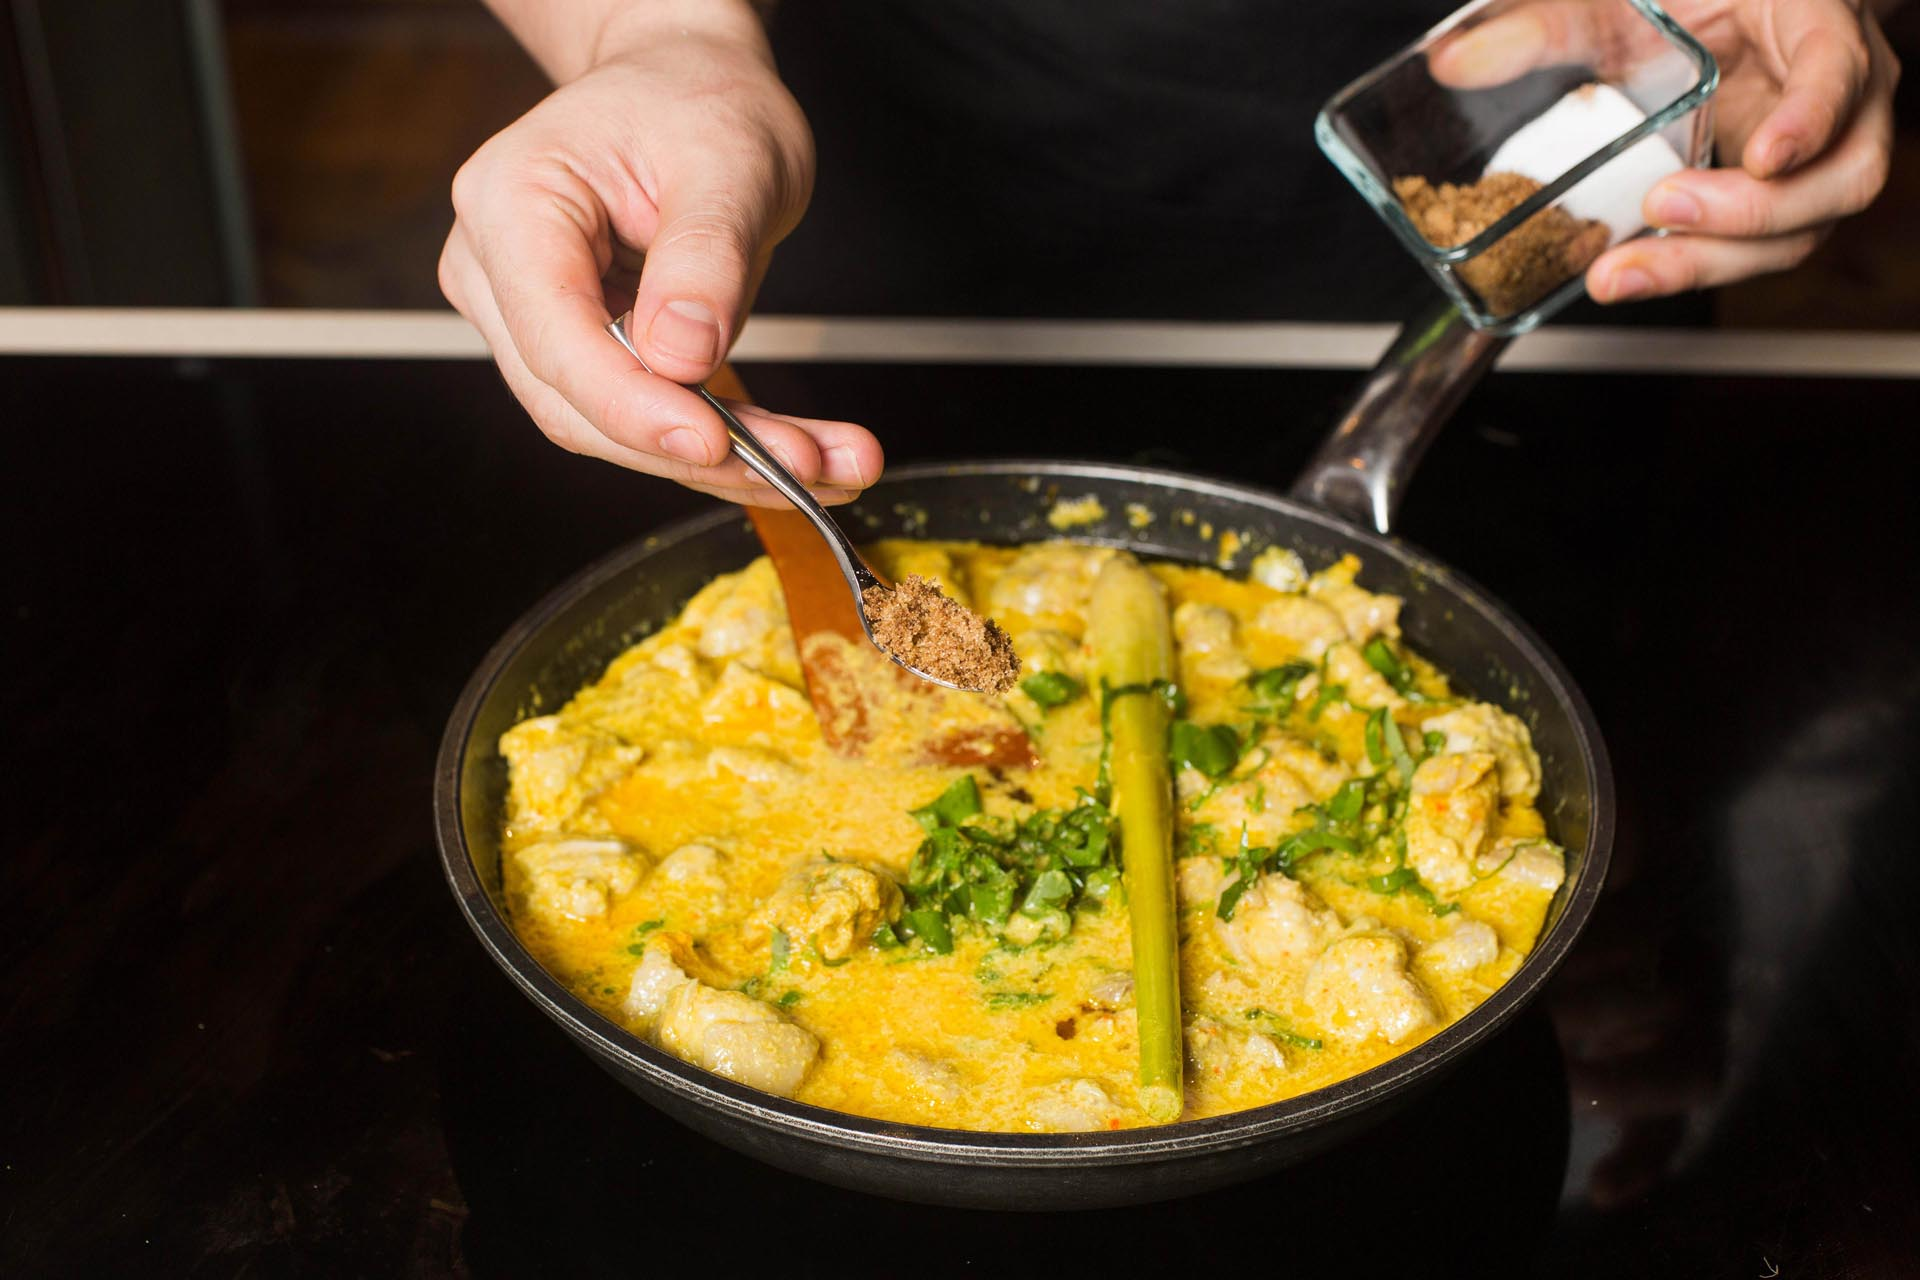 Season the curry and add turmeric leaves